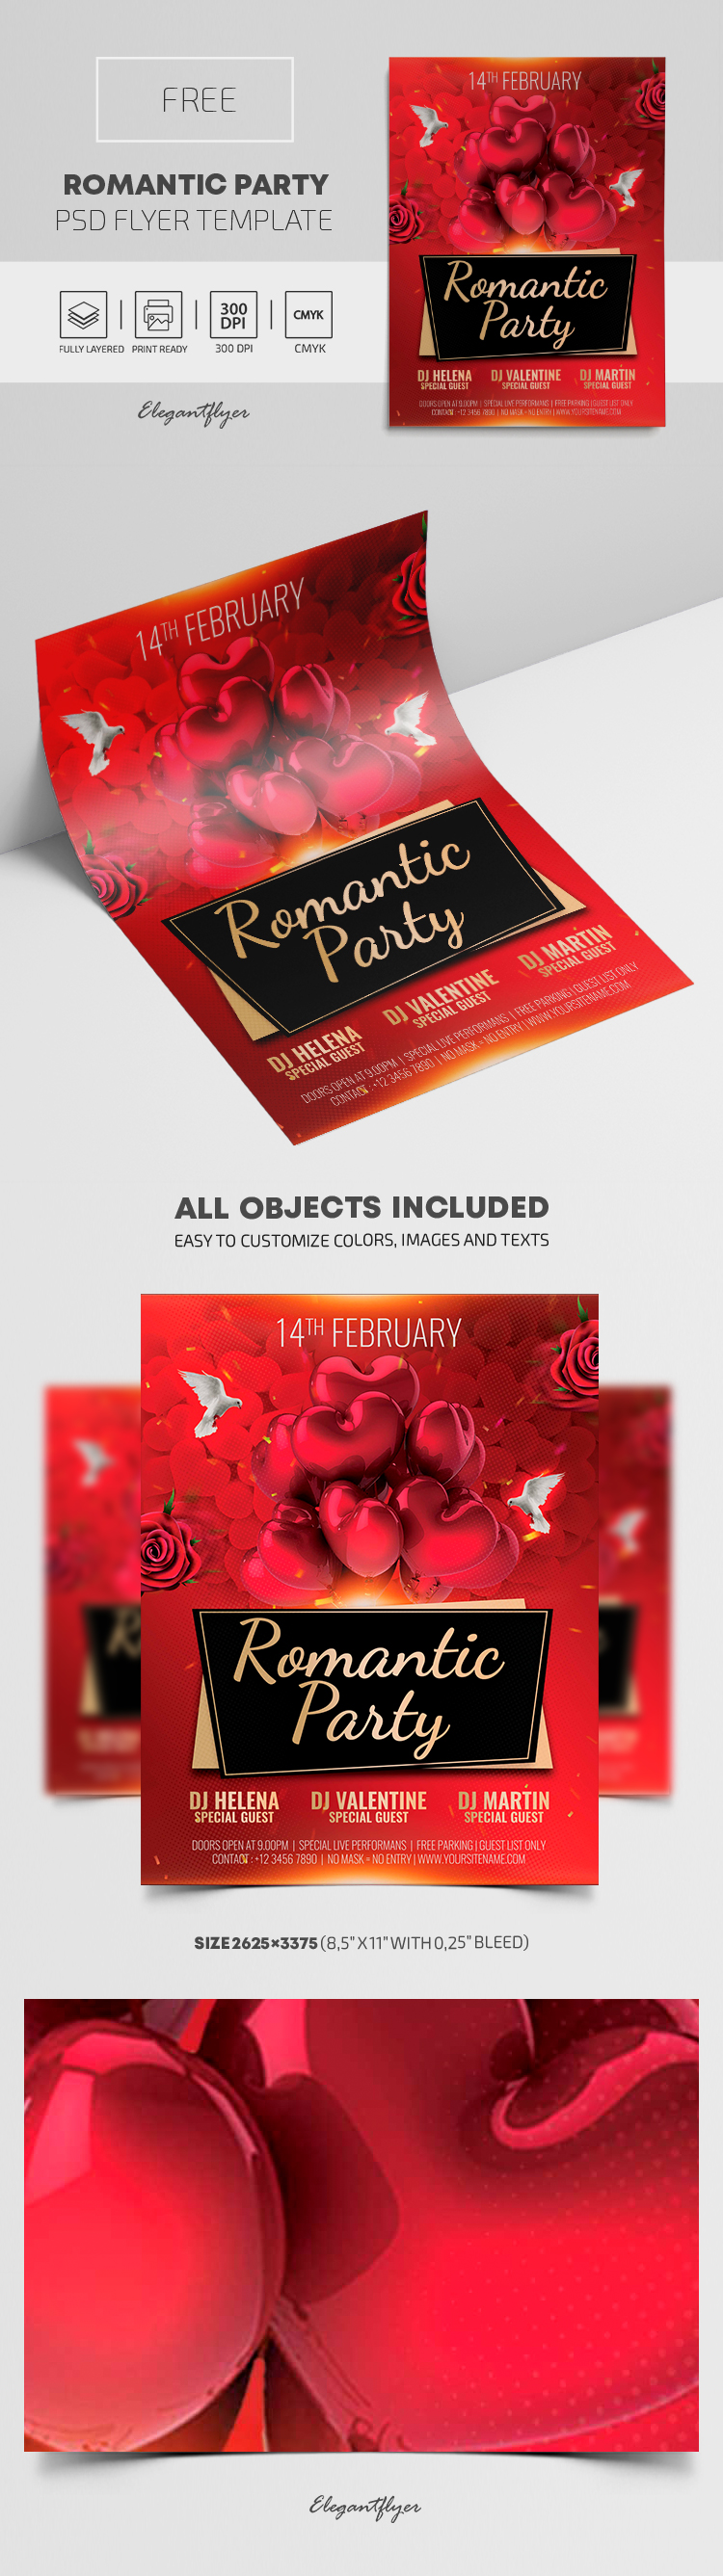 Romantic Party – Free Flyer PSD Template